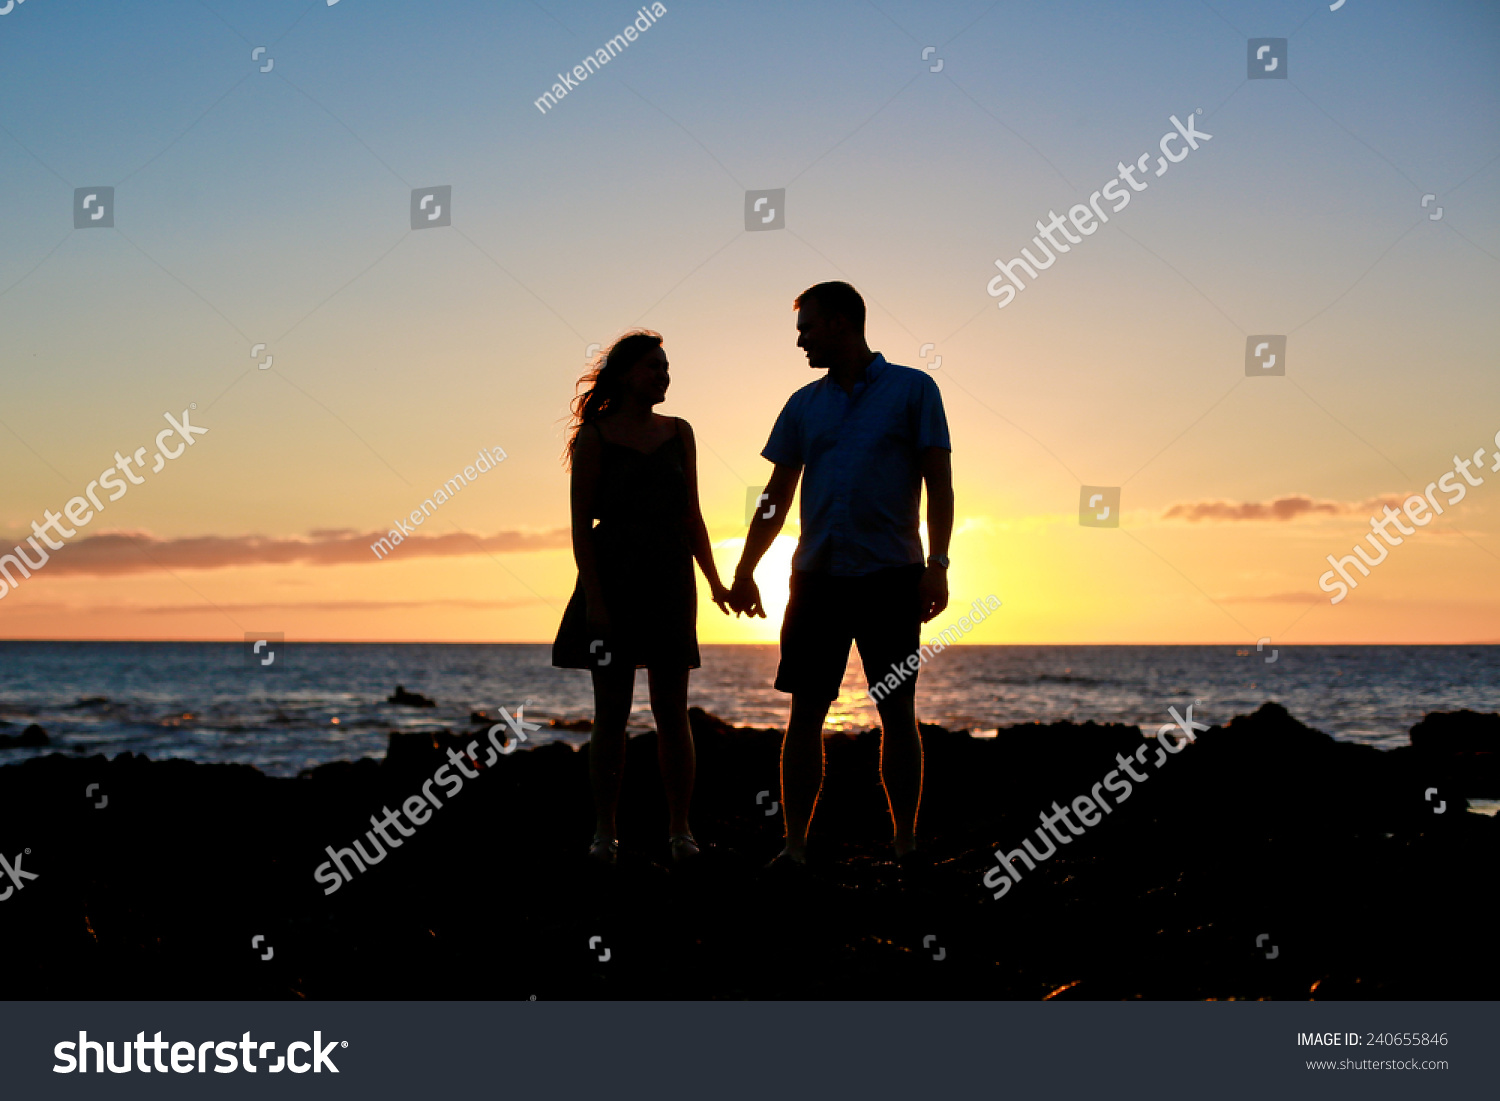 Silhouette Couple Holding Hands Sunset Stock Photo 240655846 ... for Couple Holding Hands Silhouette Sunset  565ane